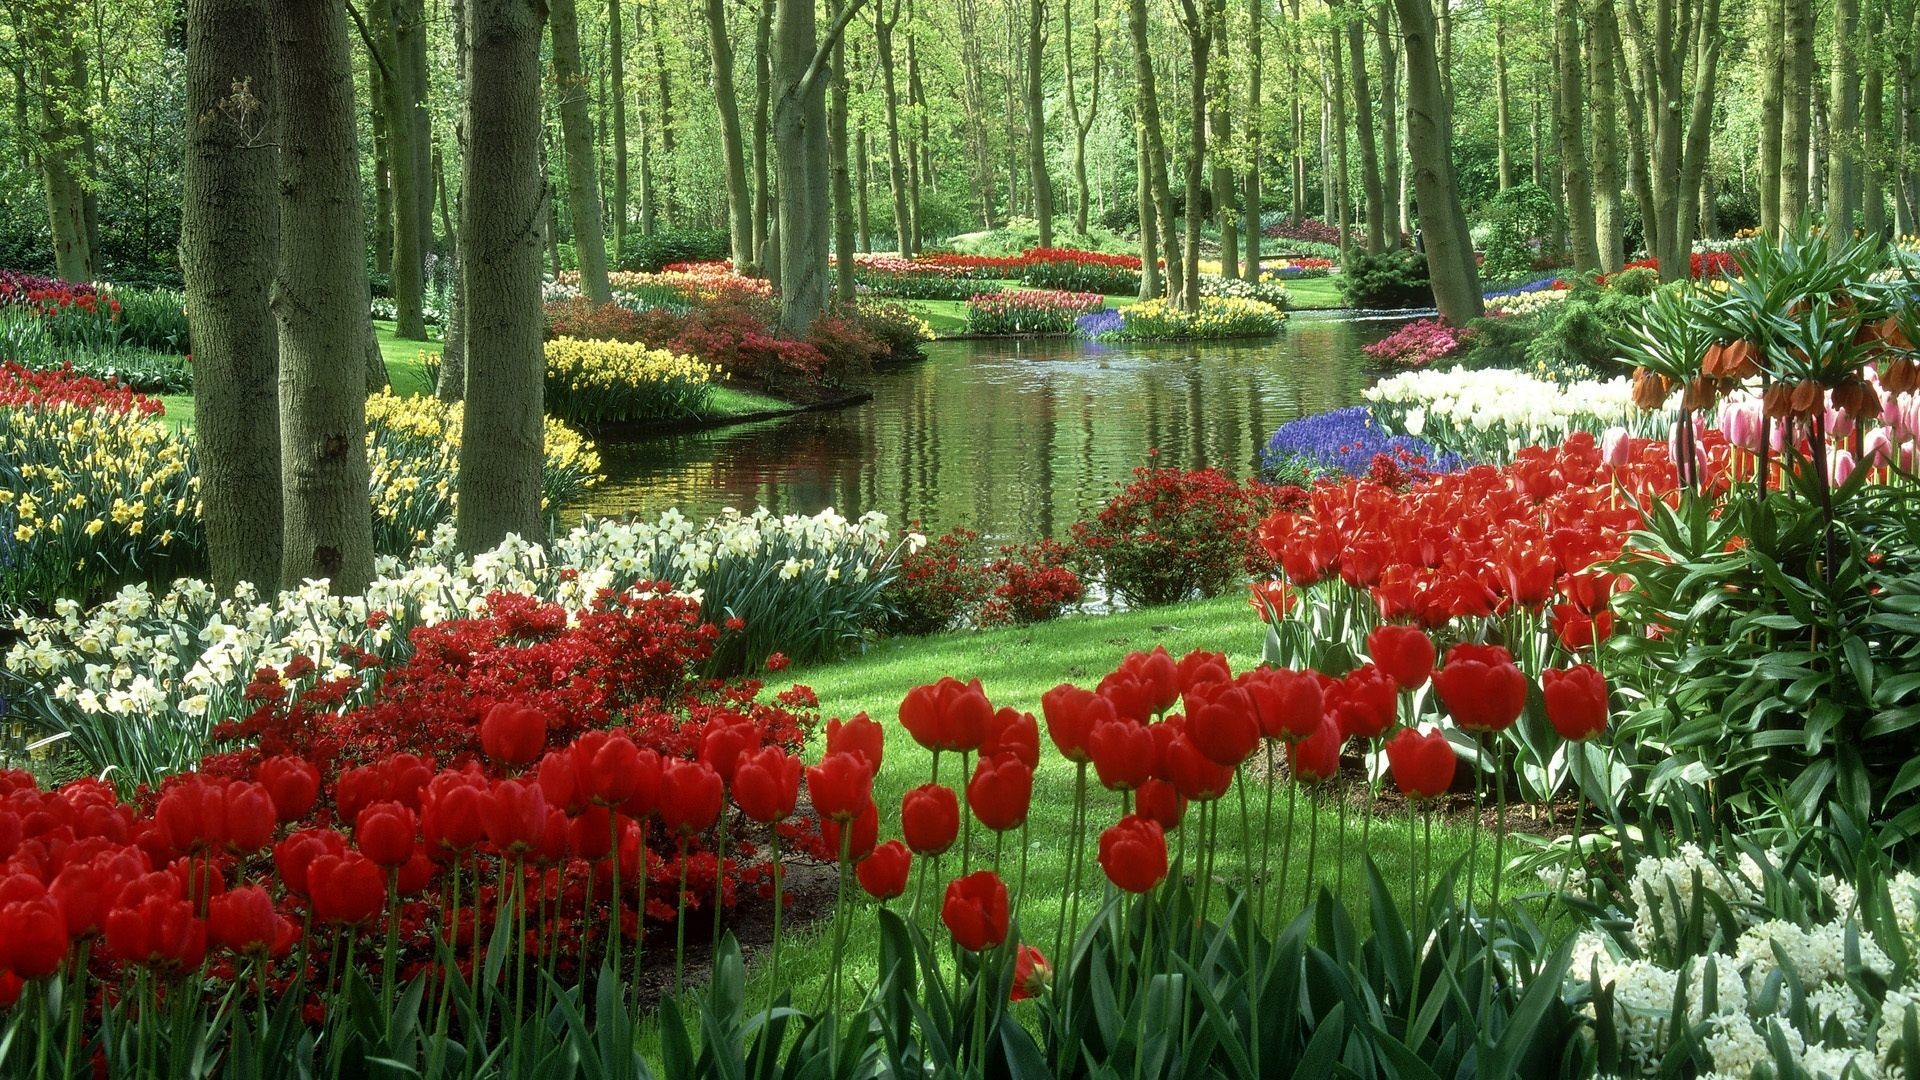 1920x1080 Wallpaper Beautiful Flower Garden E Addicts On Nature Flowers Design 60